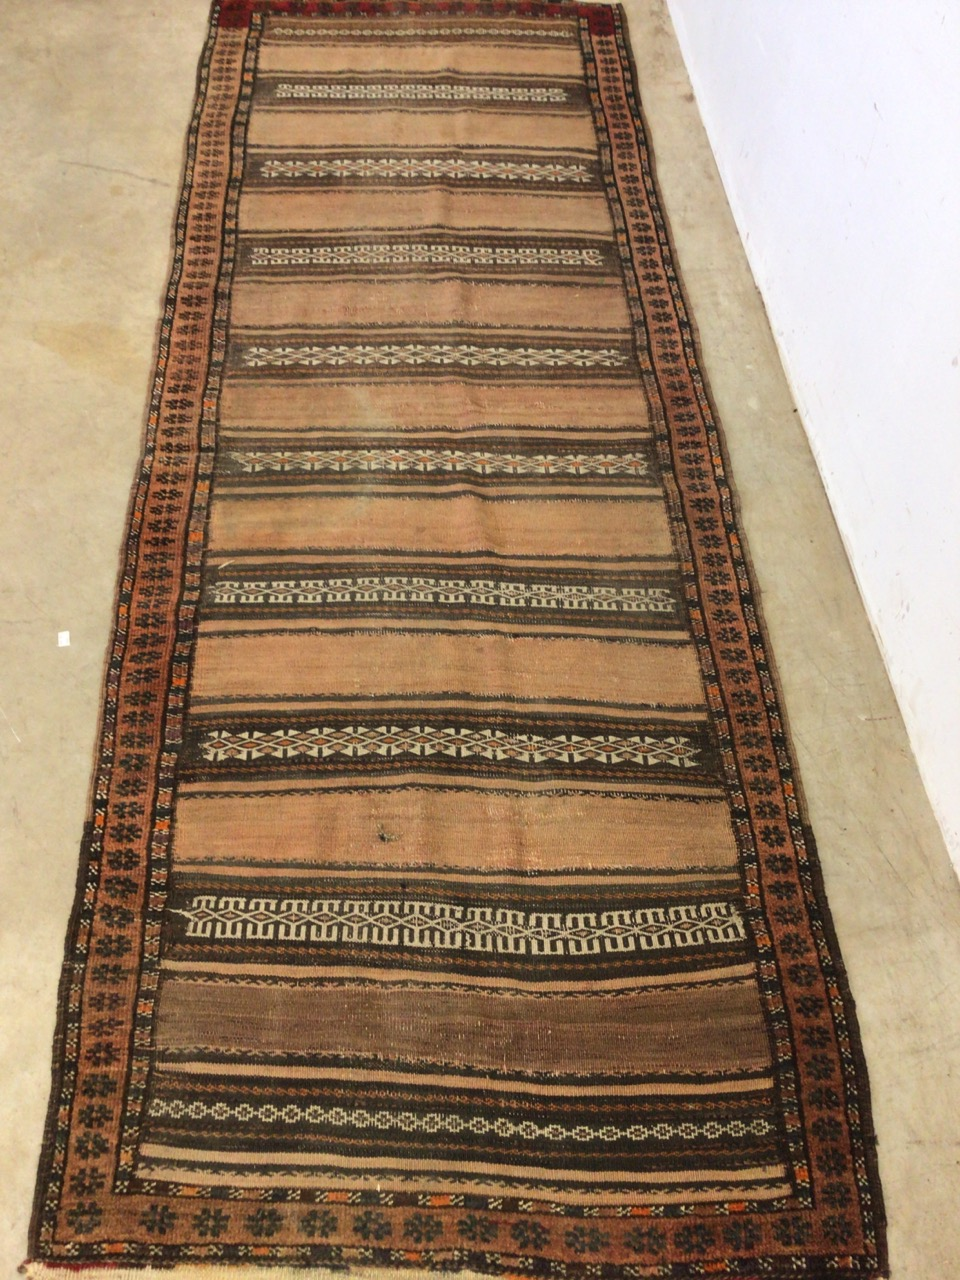 An antique eastern runner with Aztec influence. W:290cm x H:105cm